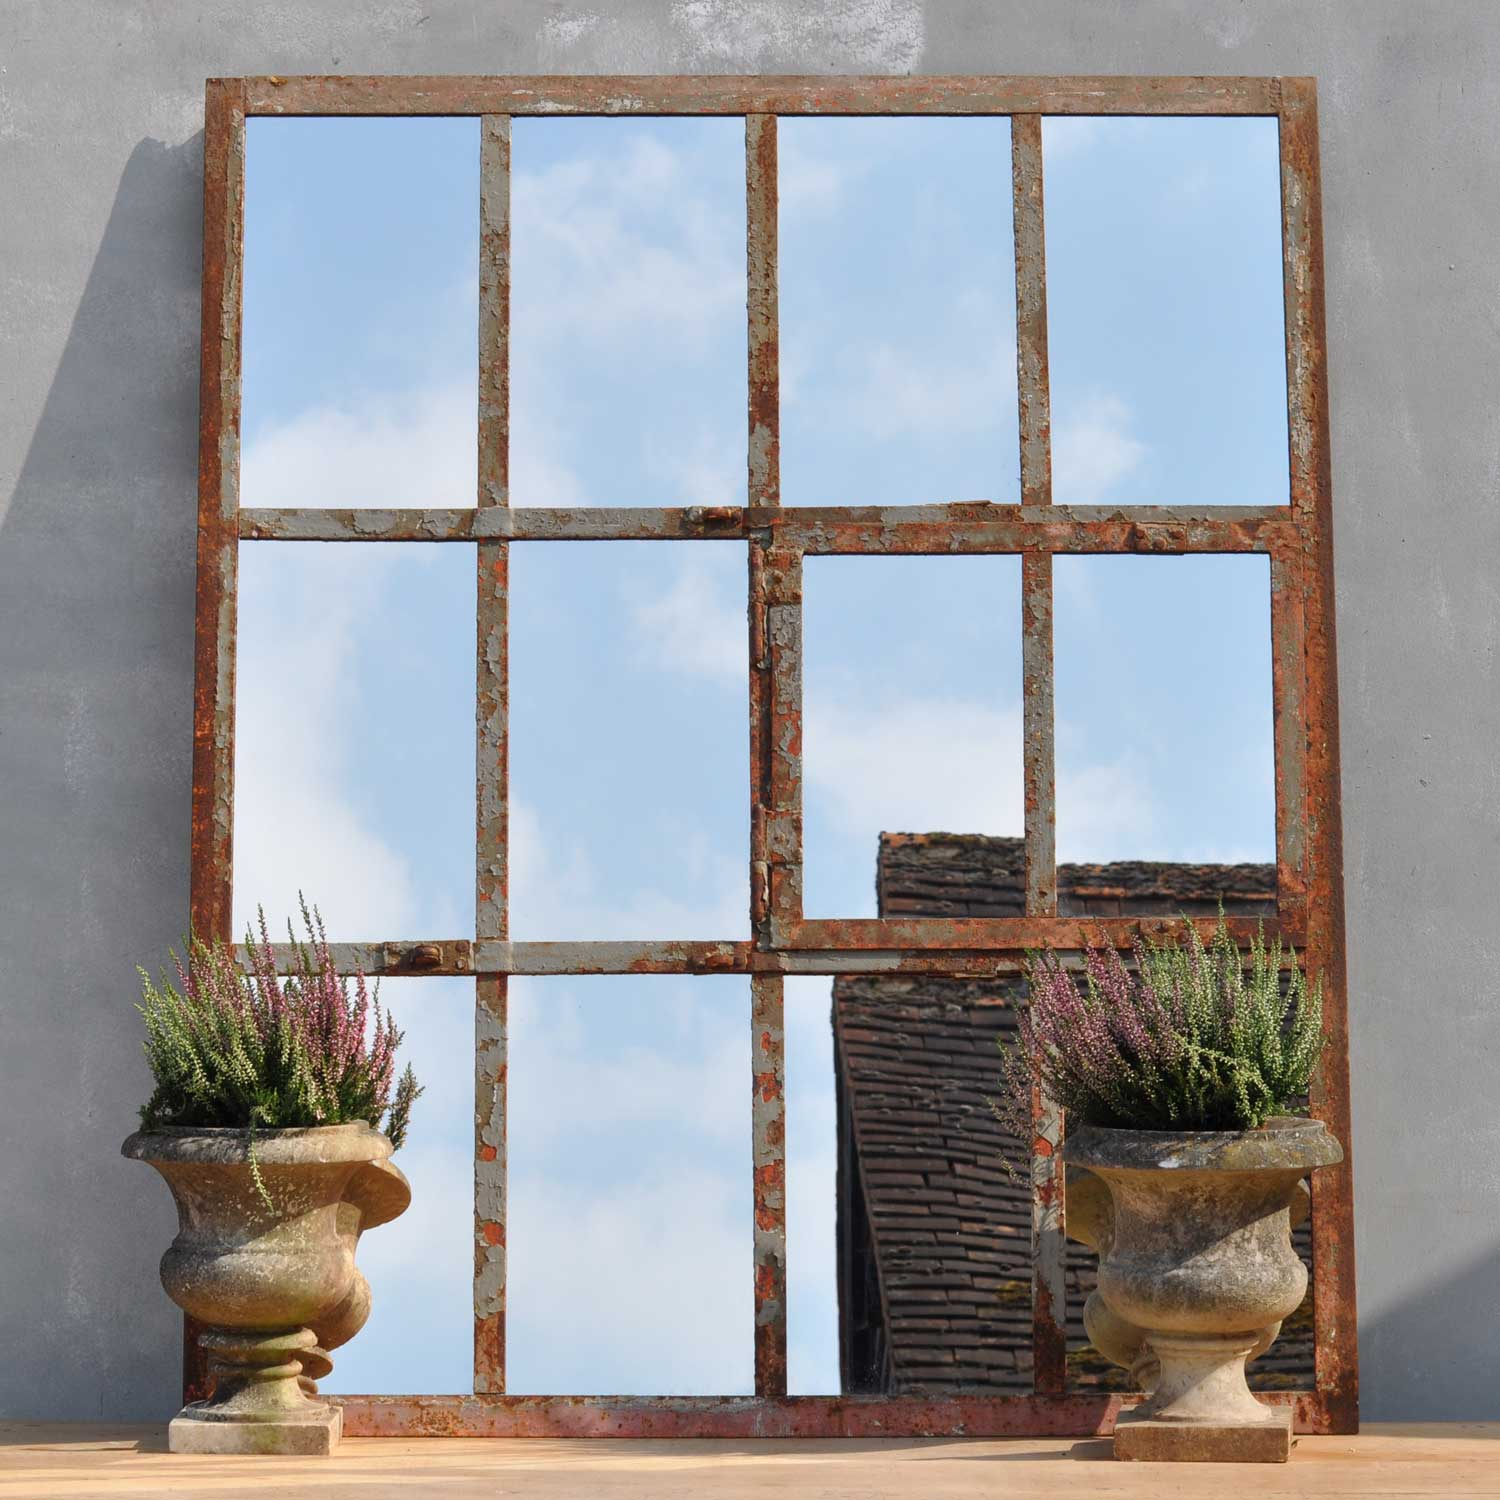 Industrial Cast Iron Warehouse Window Mirror Oblong